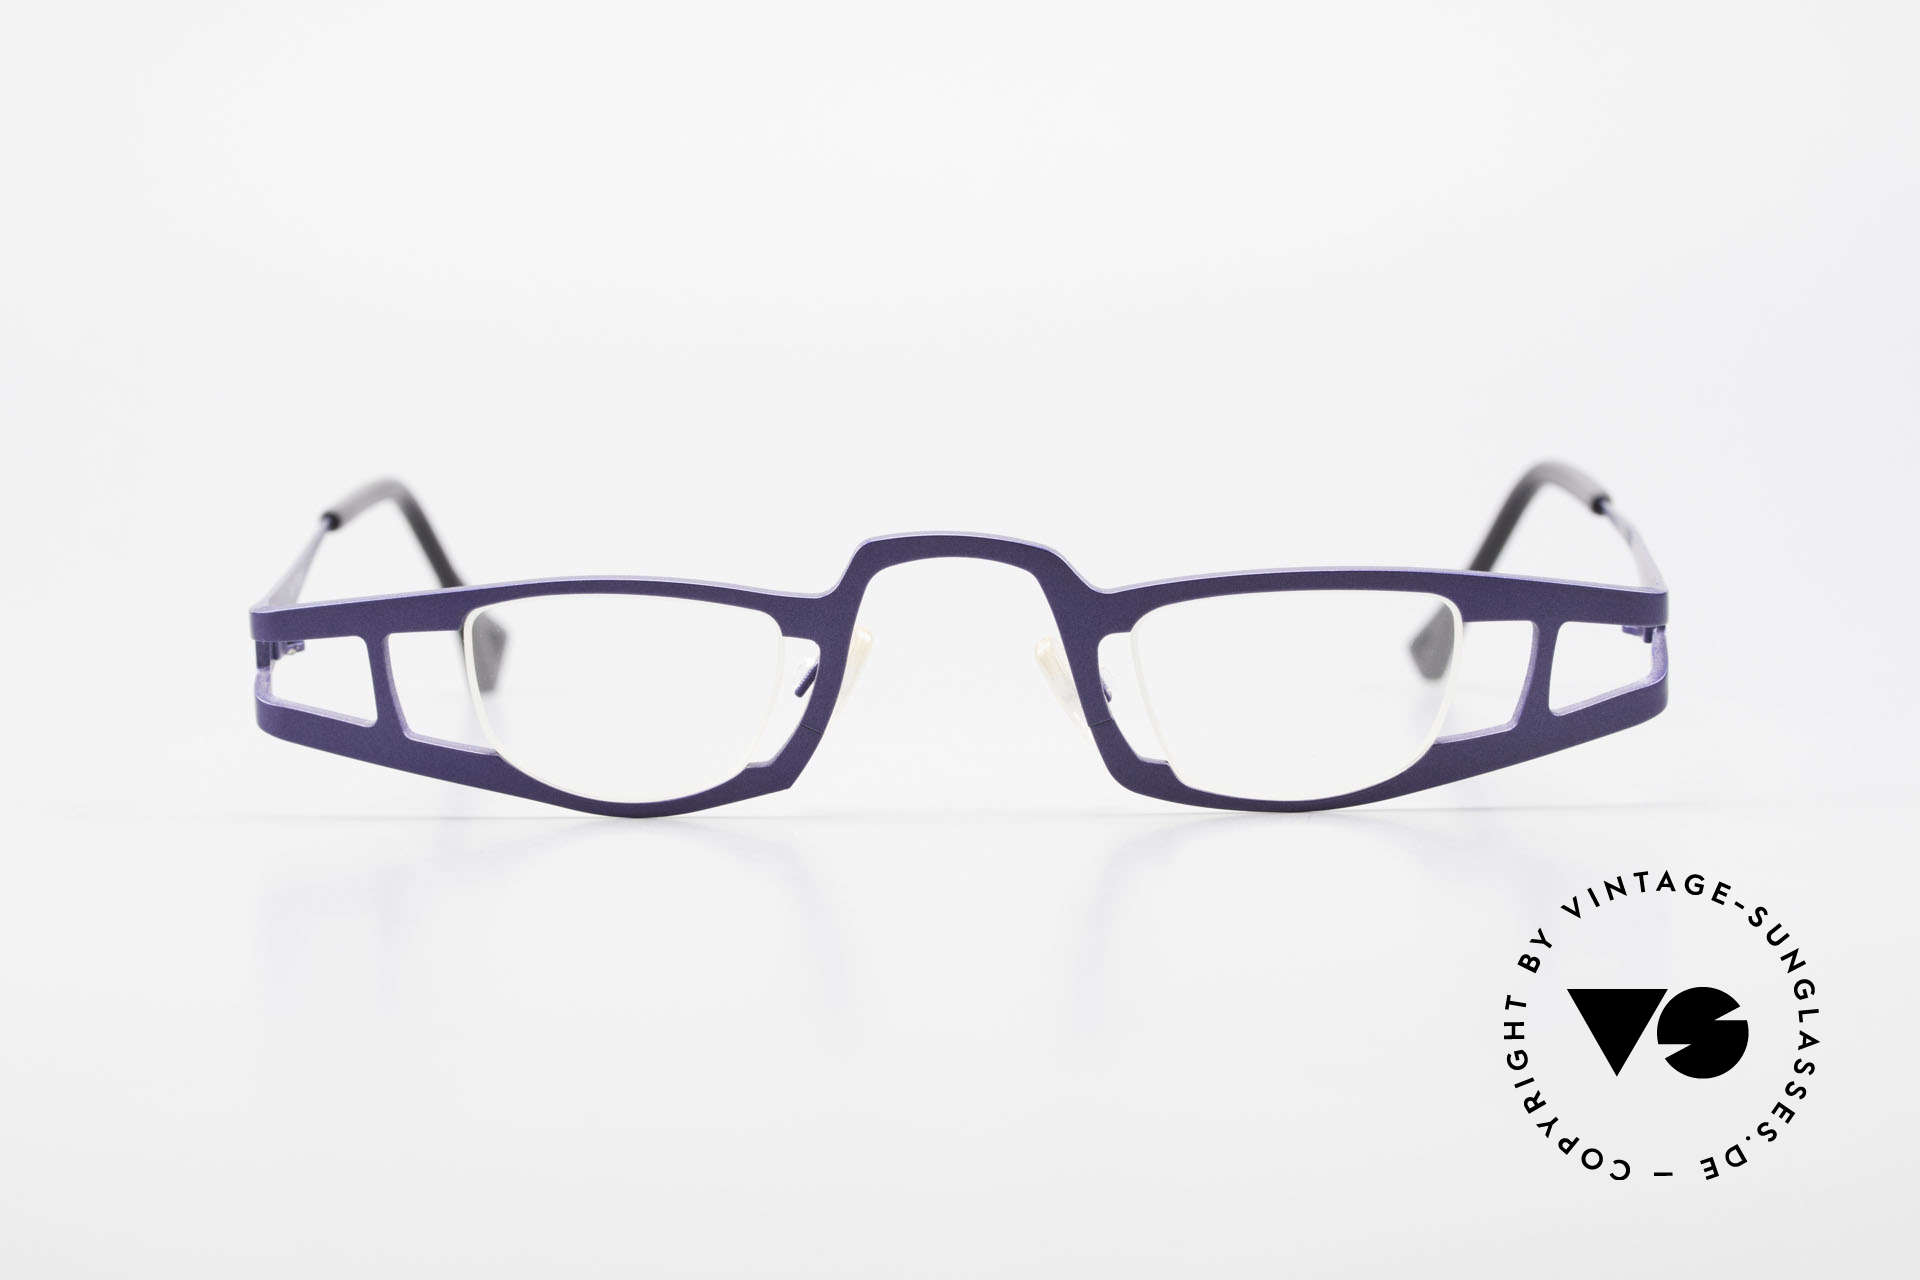 Theo Belgium Eye-Witness KO Pure Titanium Reading Specs, founded in 1989 as 'opposite pole' to the 'mainstream', Made for Women